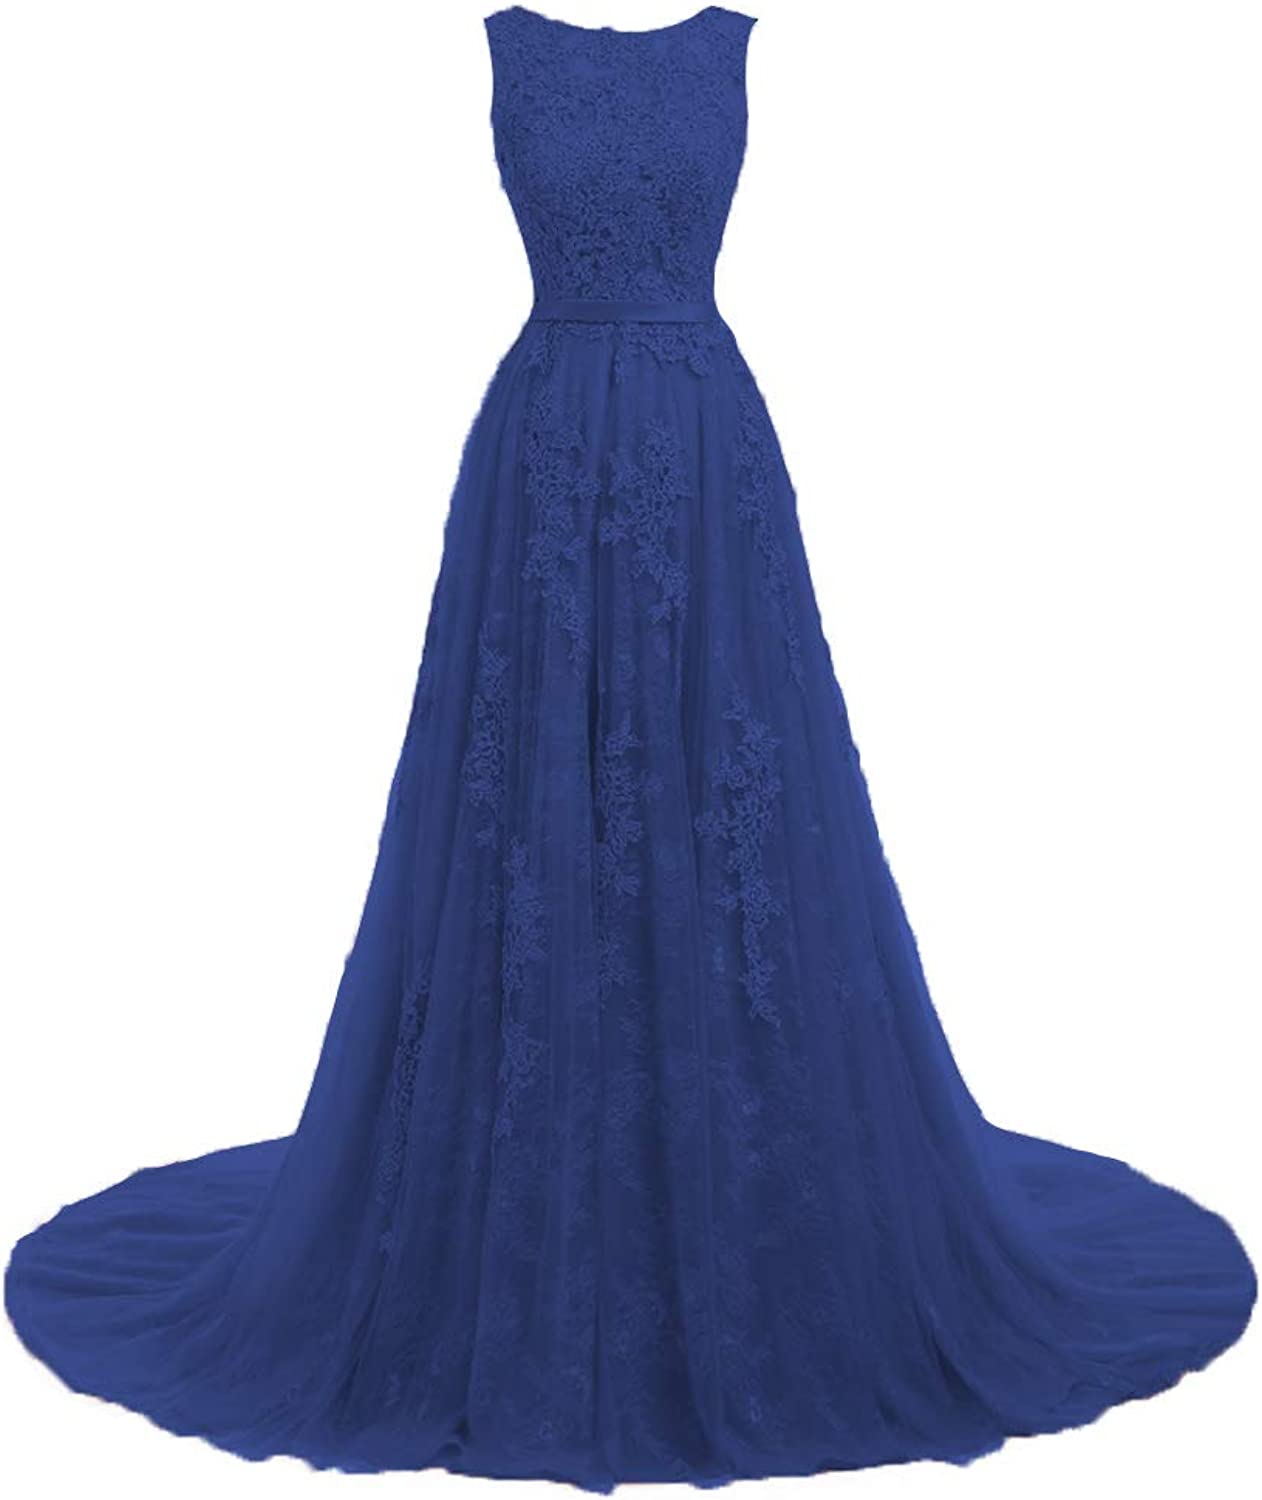 Cdress Lace Prom Dresses Long Evening Party Gowns Tulle Maxi Wedding Formal Dress Appliques Flora